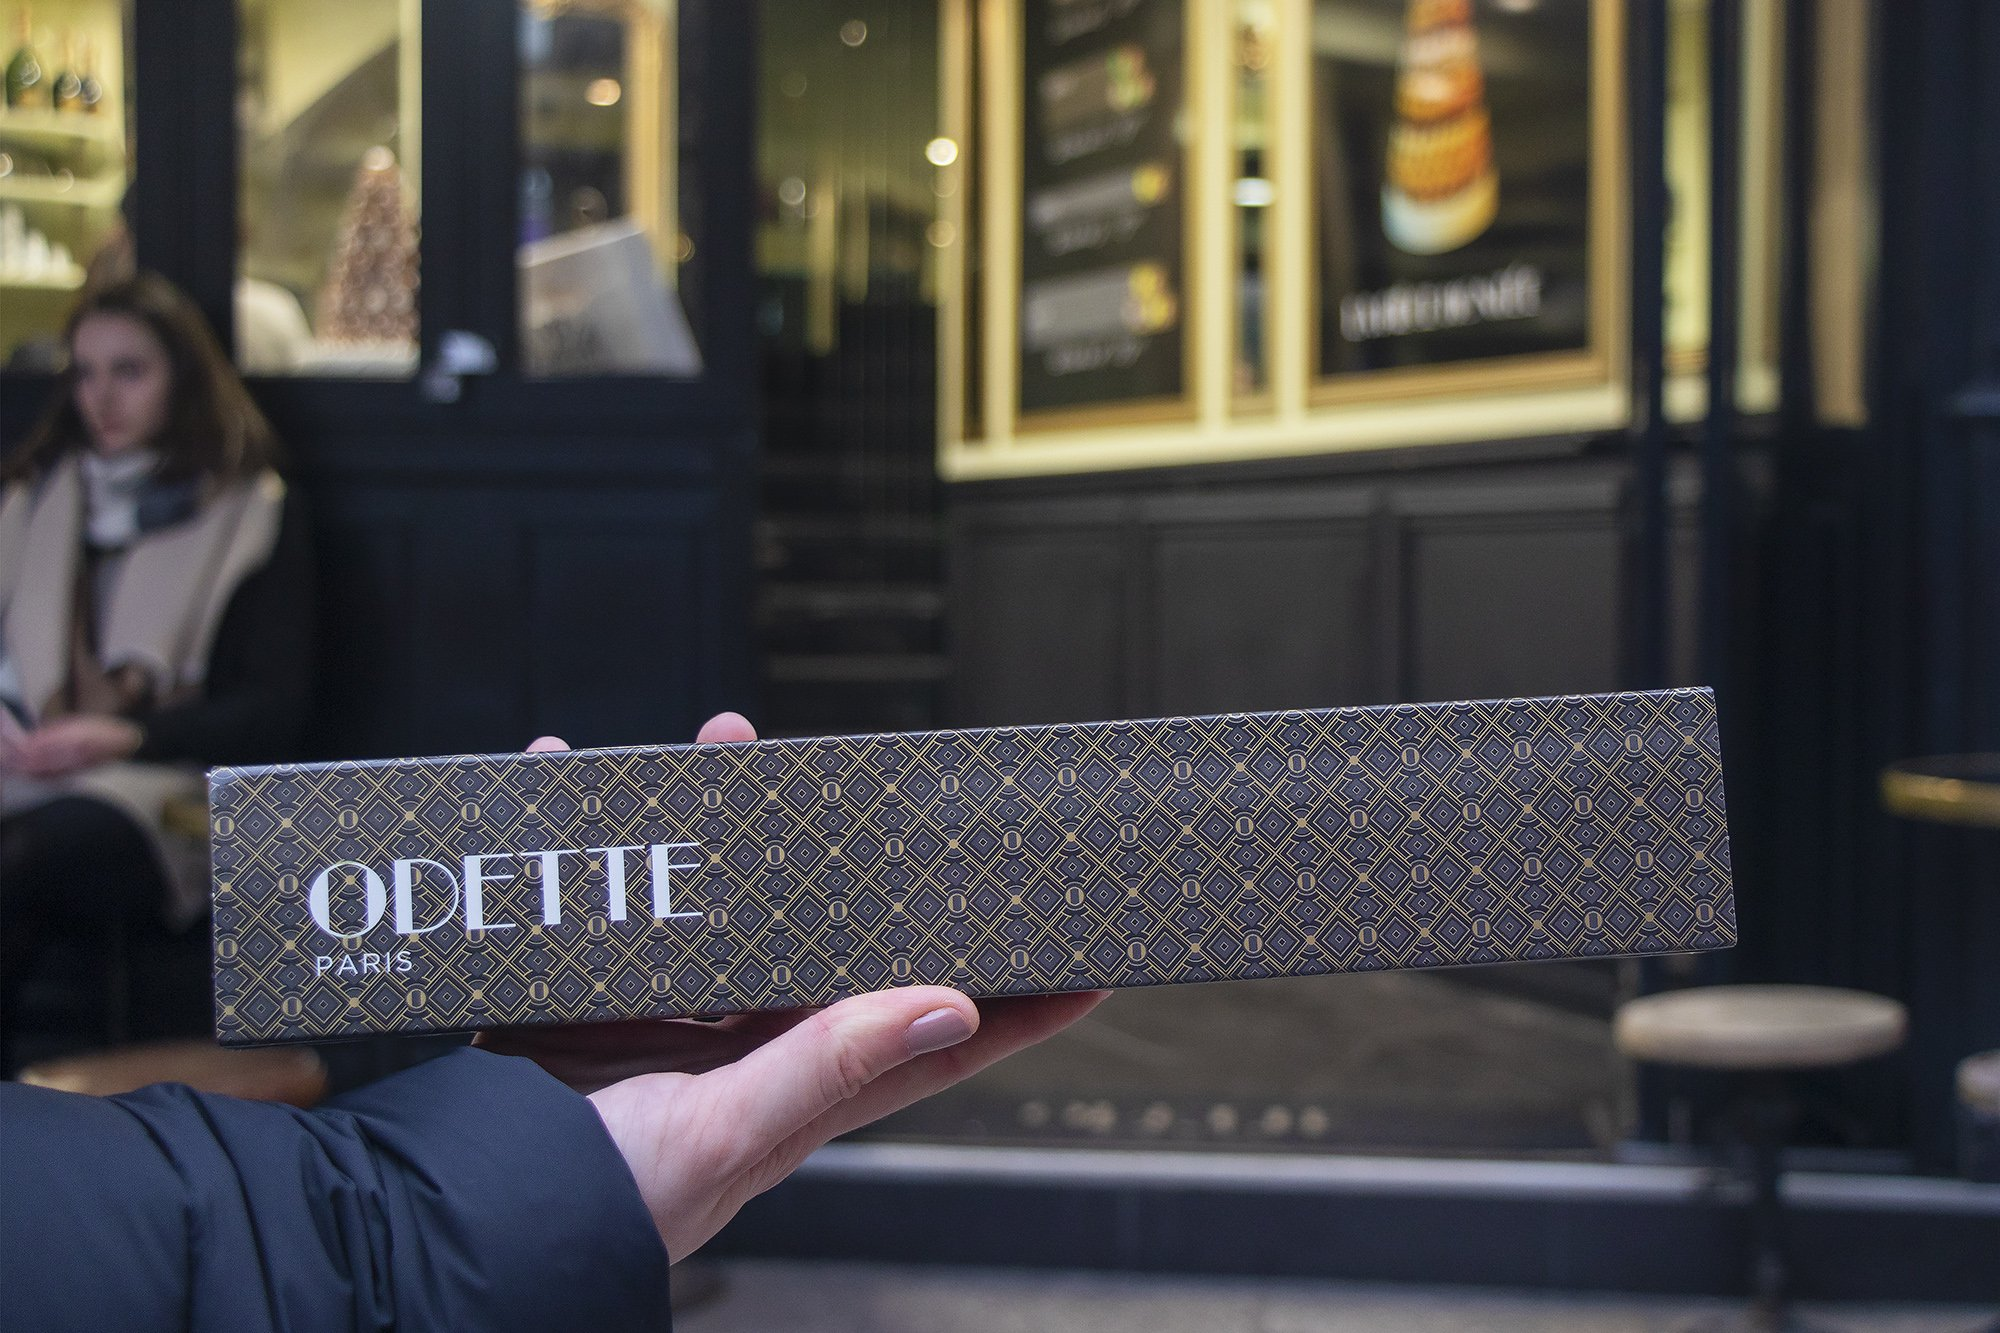 Boites de choux box from Odette, Paris